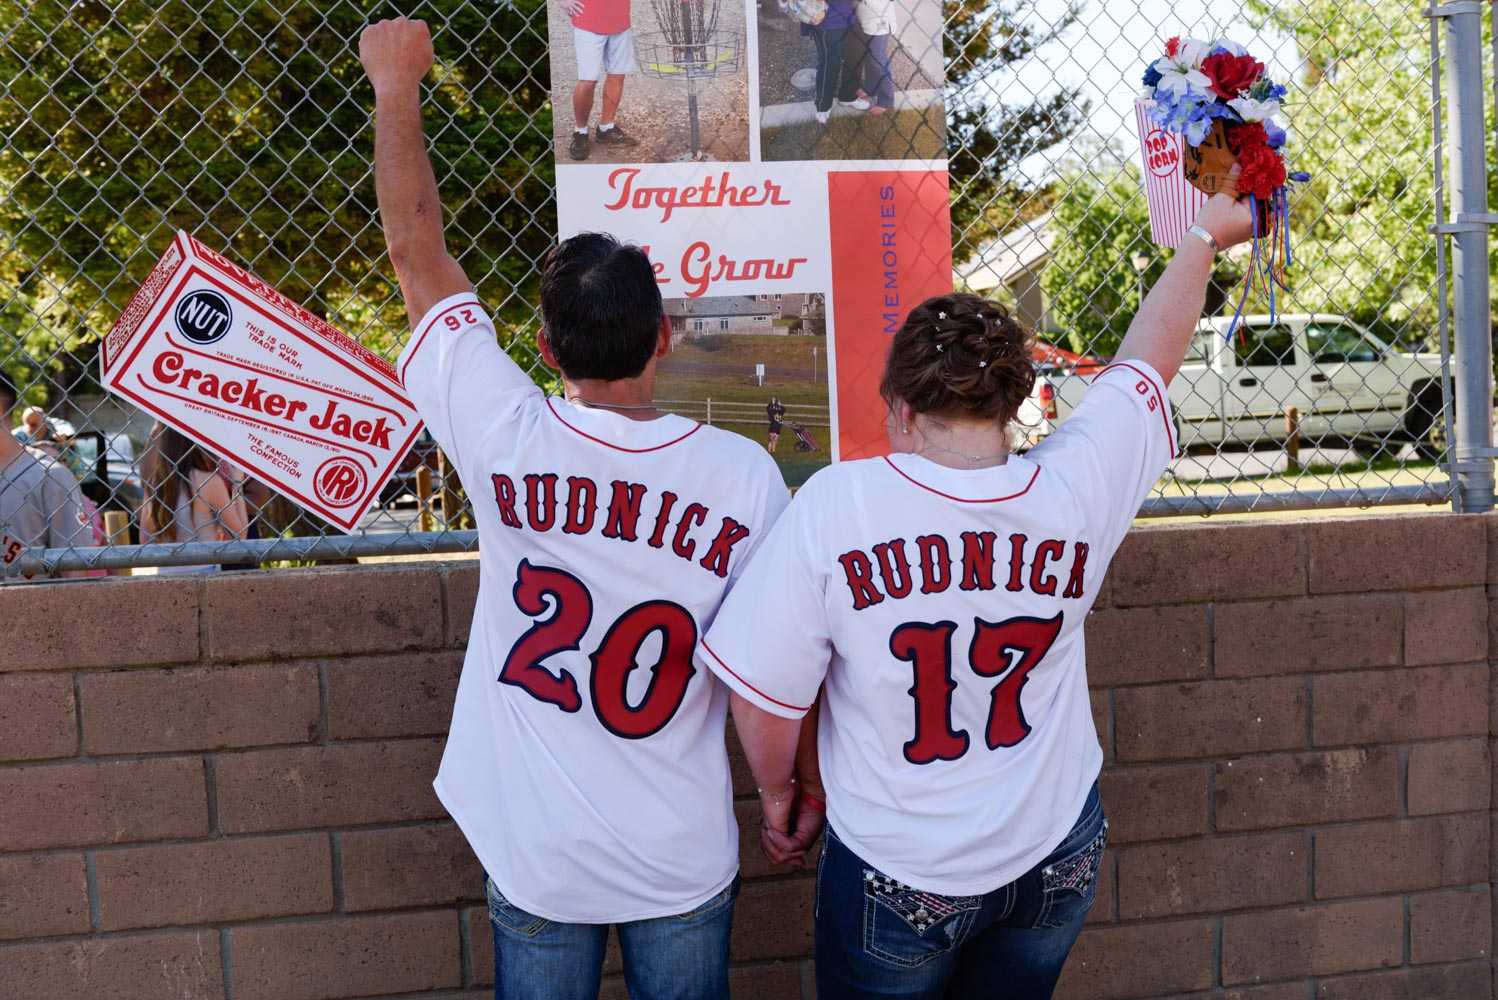 Back view of man and woman wearing white baseball jerseys, with arms raised in celebration after their wedding ceremony.